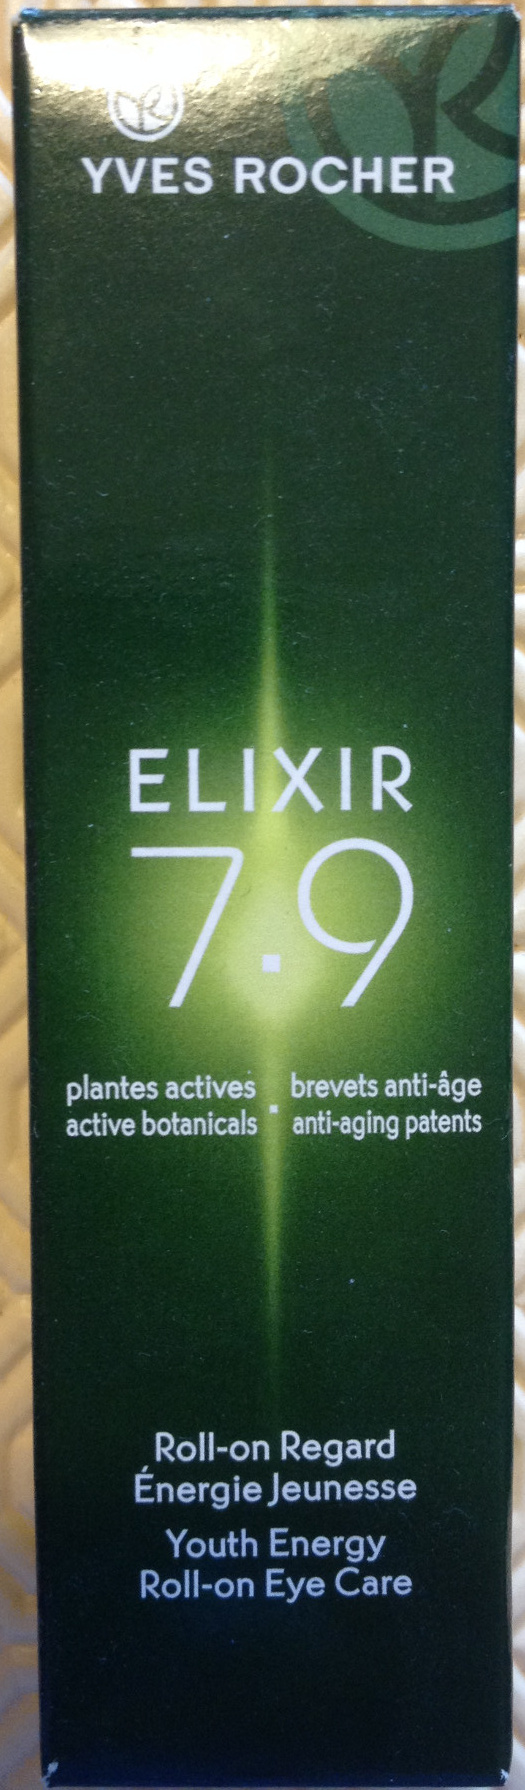 Elixir 7.9 roll-on Regard - Produit - fr